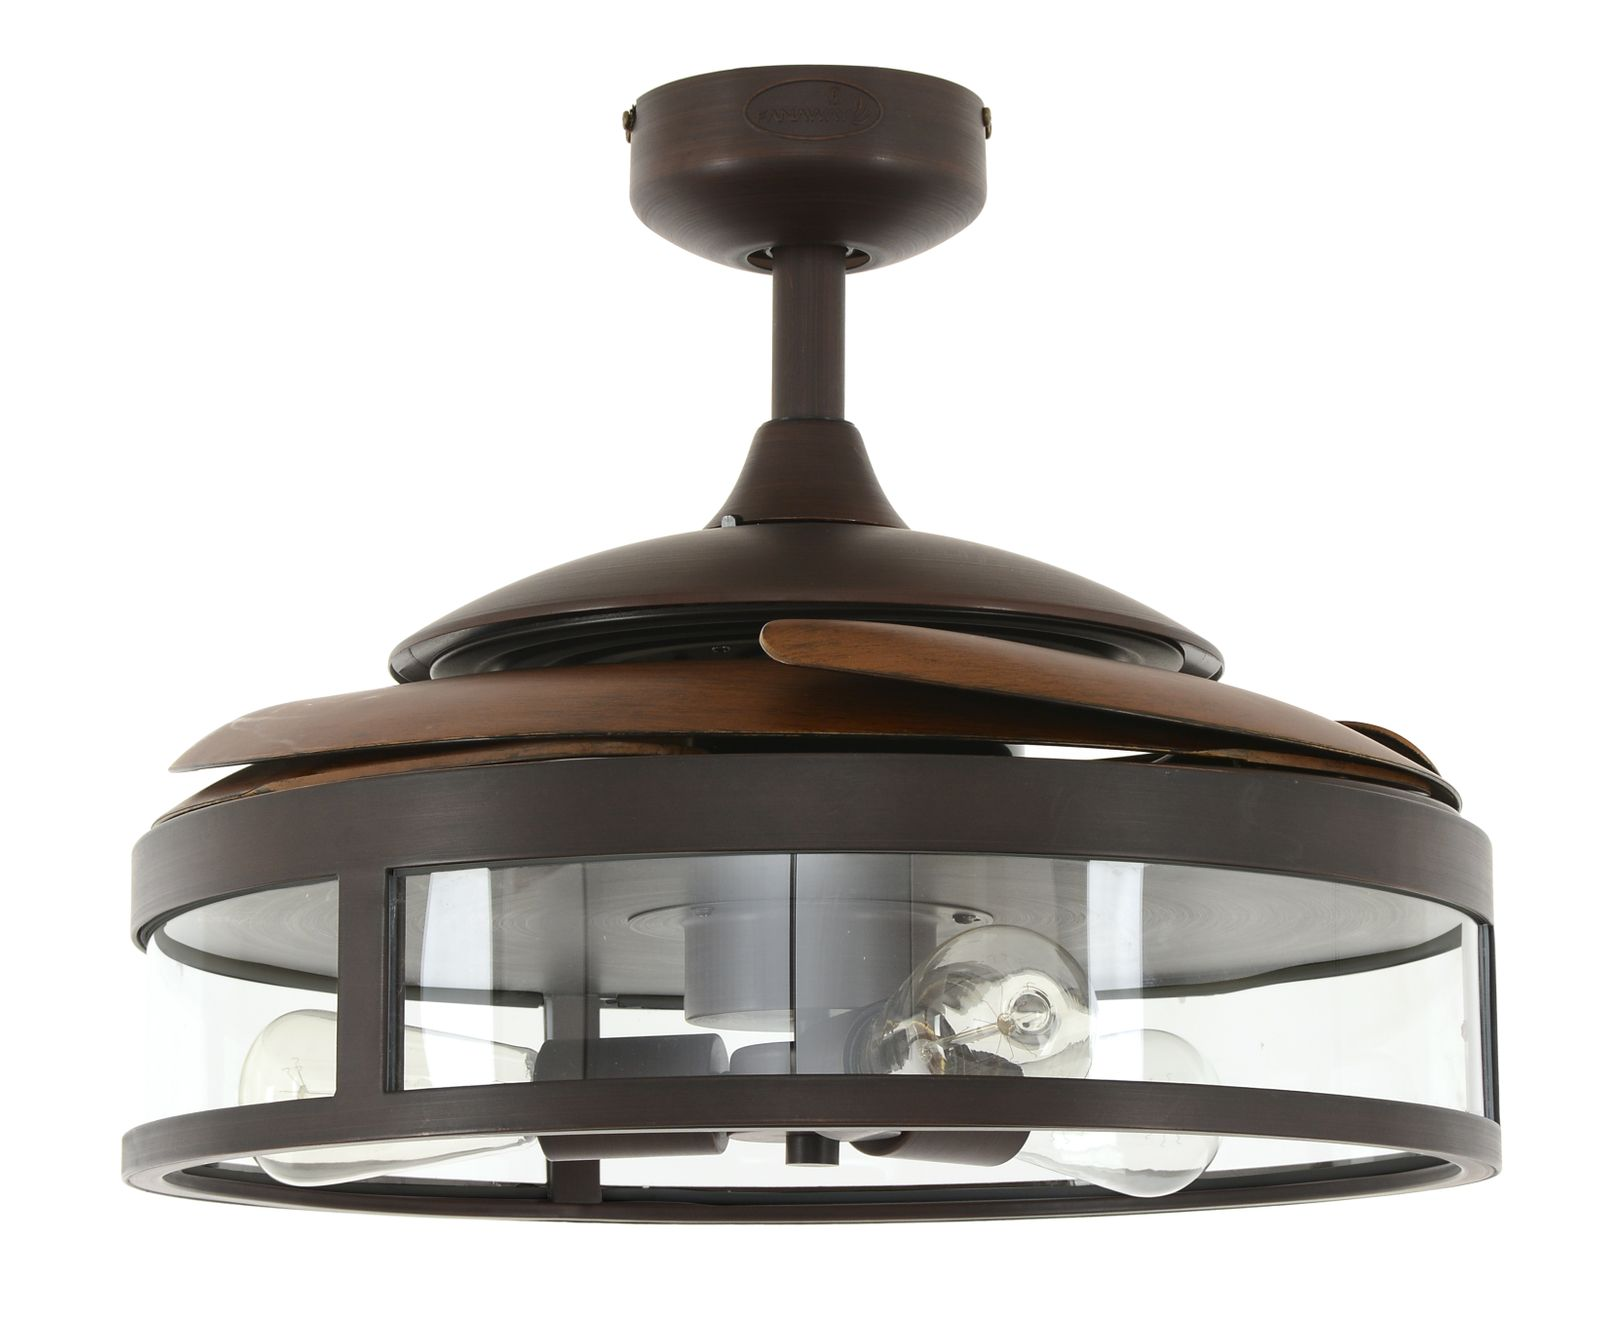 ceilings koa fan dc oil airfusion rubbed ceiling light with akmani bronze in